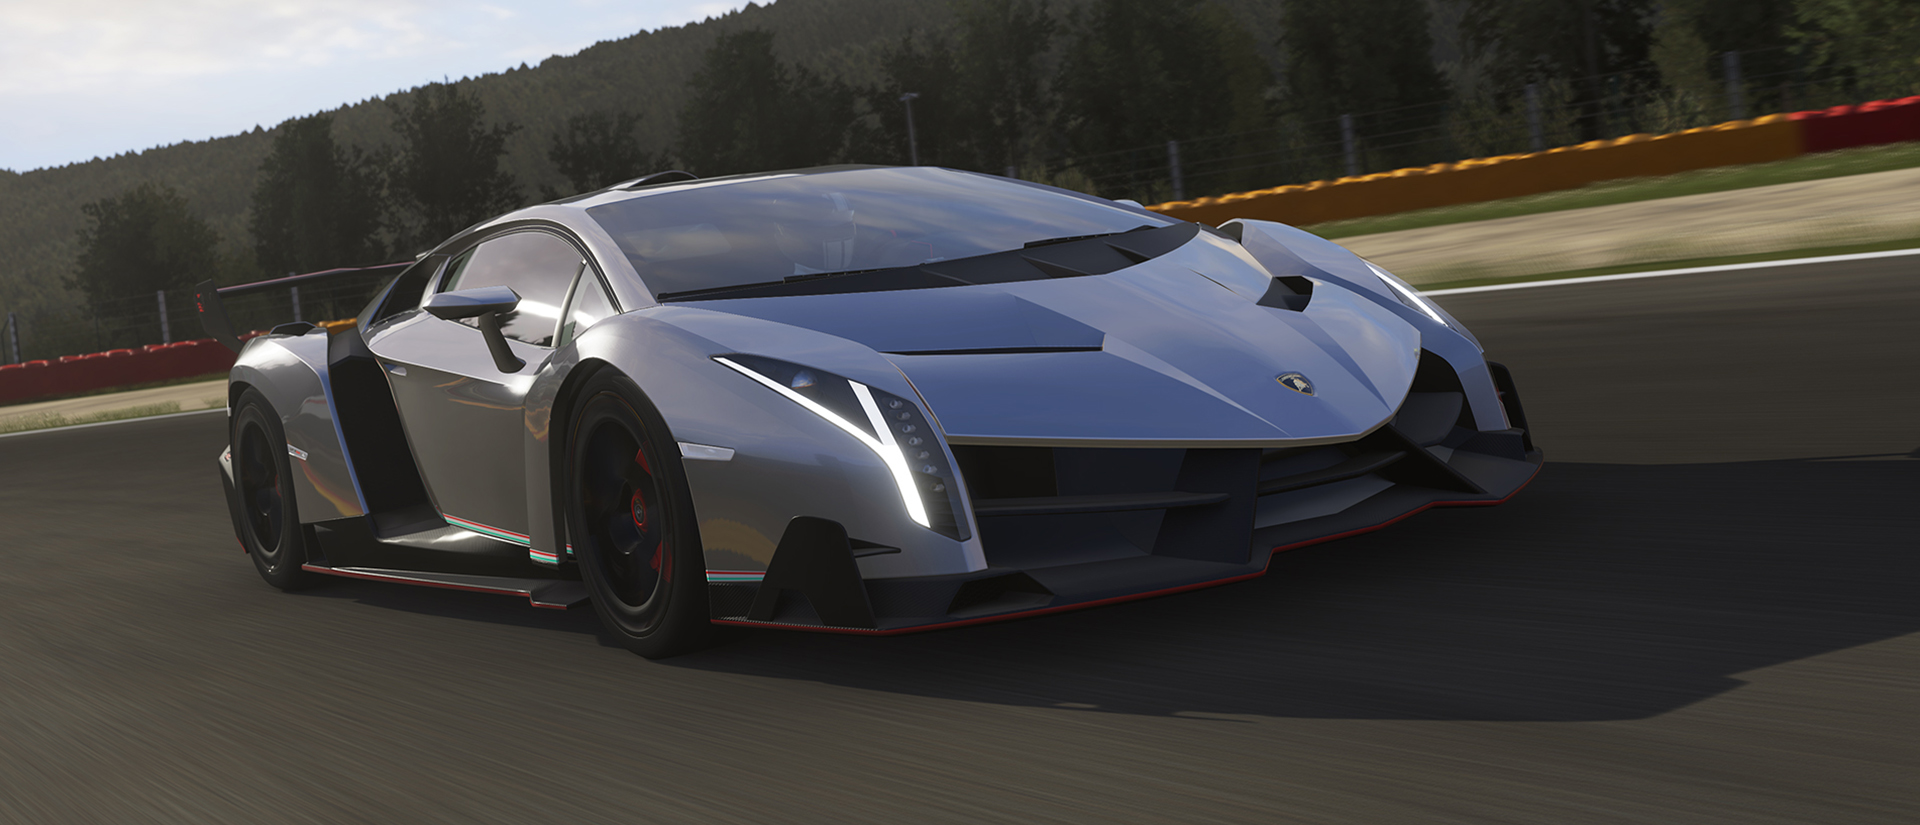 Get ready for Forza 7 with September's Games with Gold screenshot